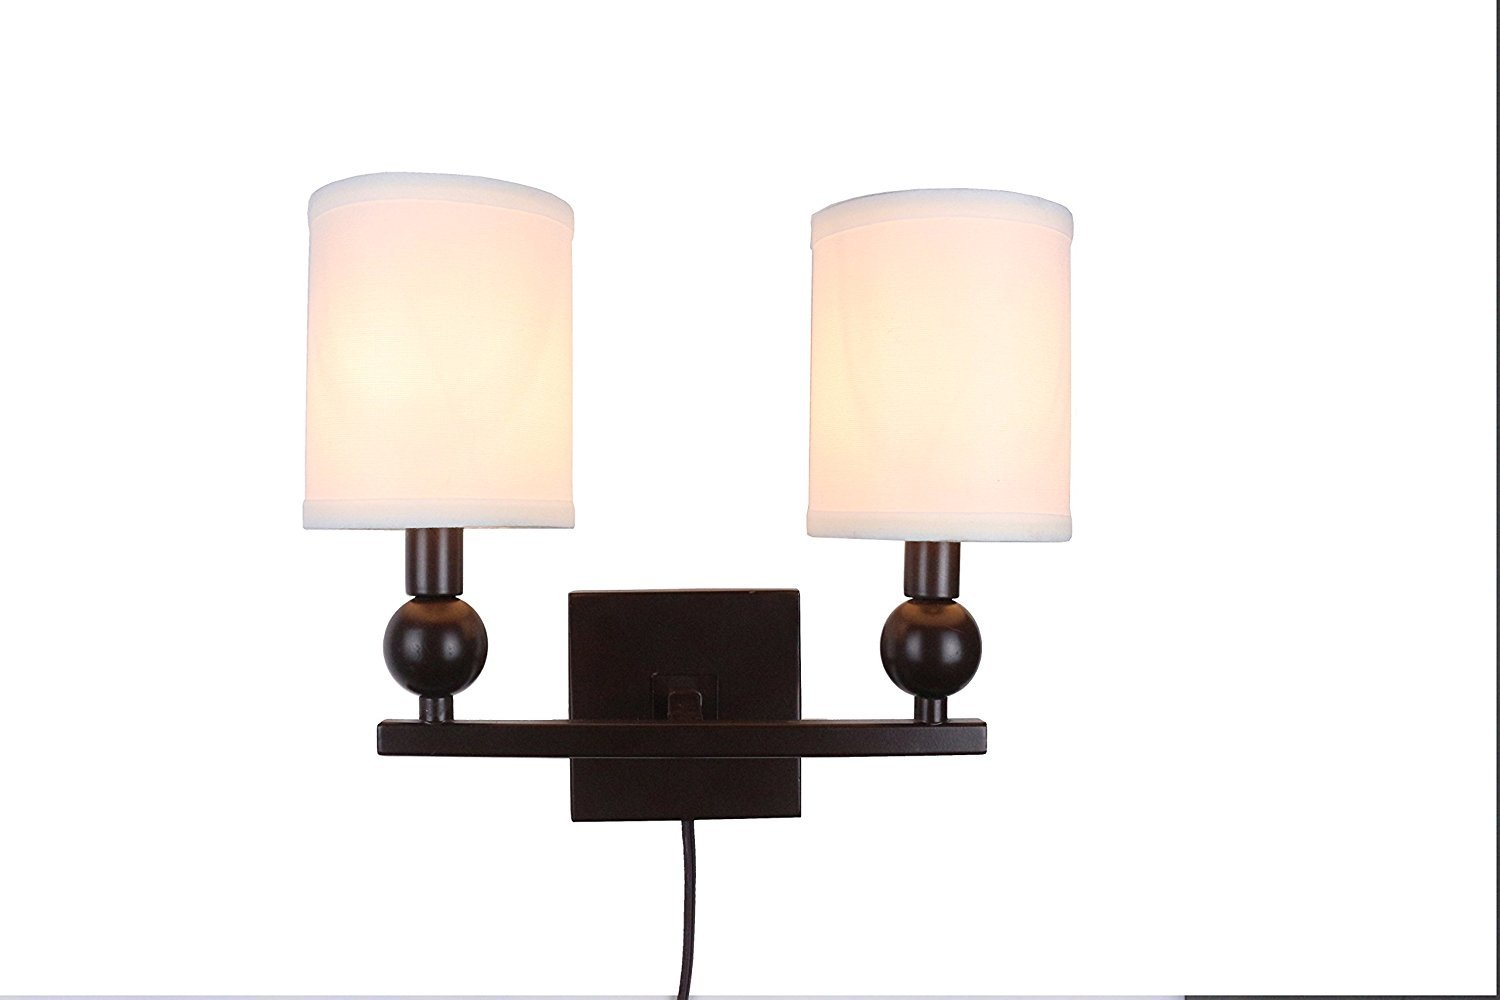 Zio Double Bulb Cord Wall Sconce with Off White Linen Shades